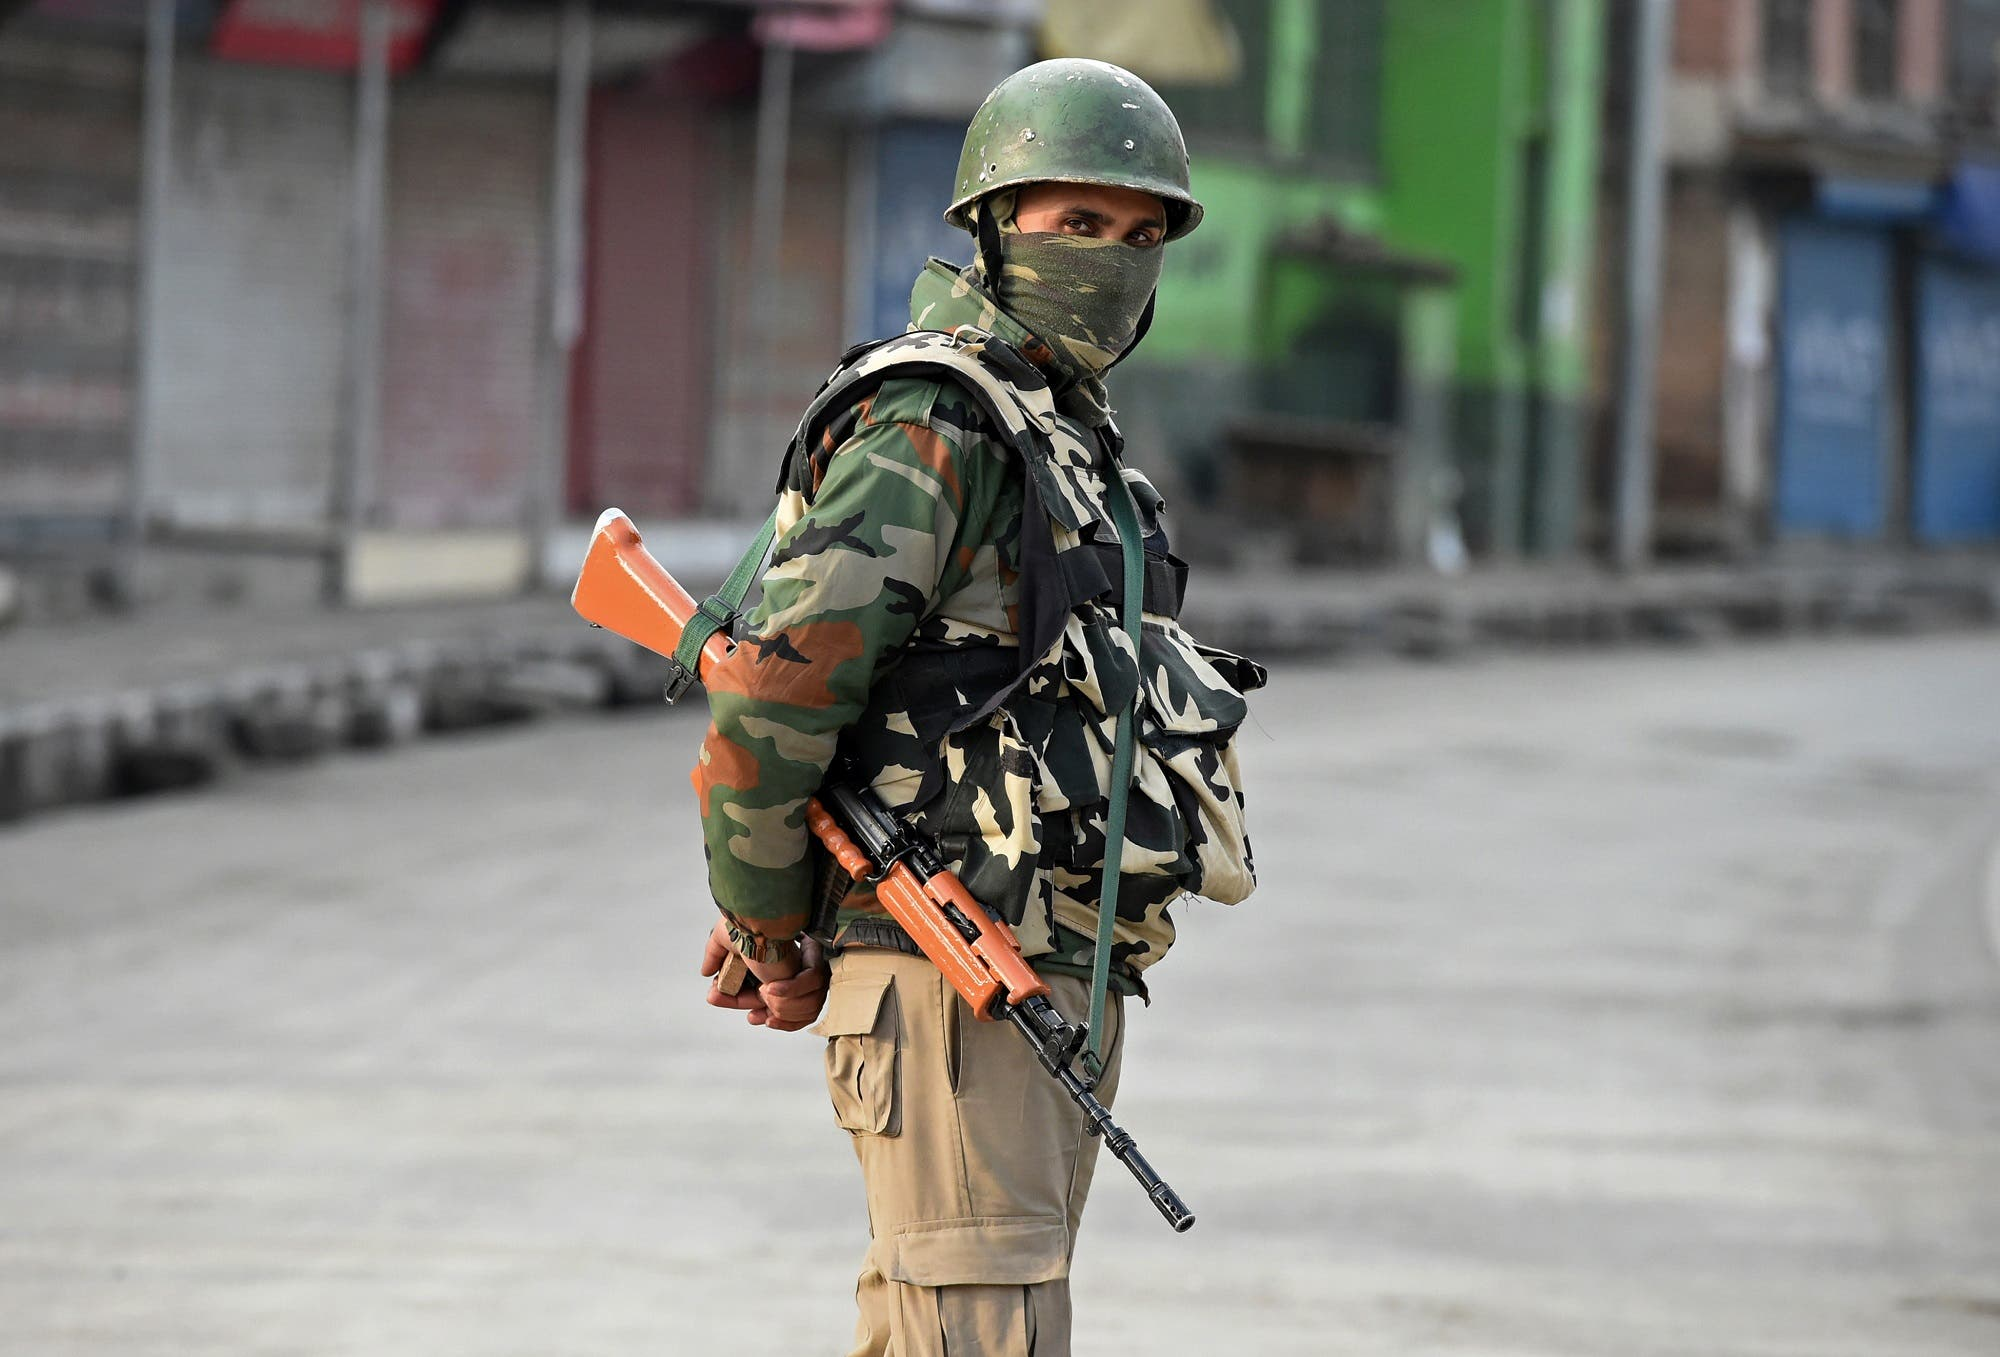 An Indian paramilitary trooper stands guard the day after a gunfight between suspected militants and Indian government forces, in downtown Srinagar on November 19, 2017. (AFP)